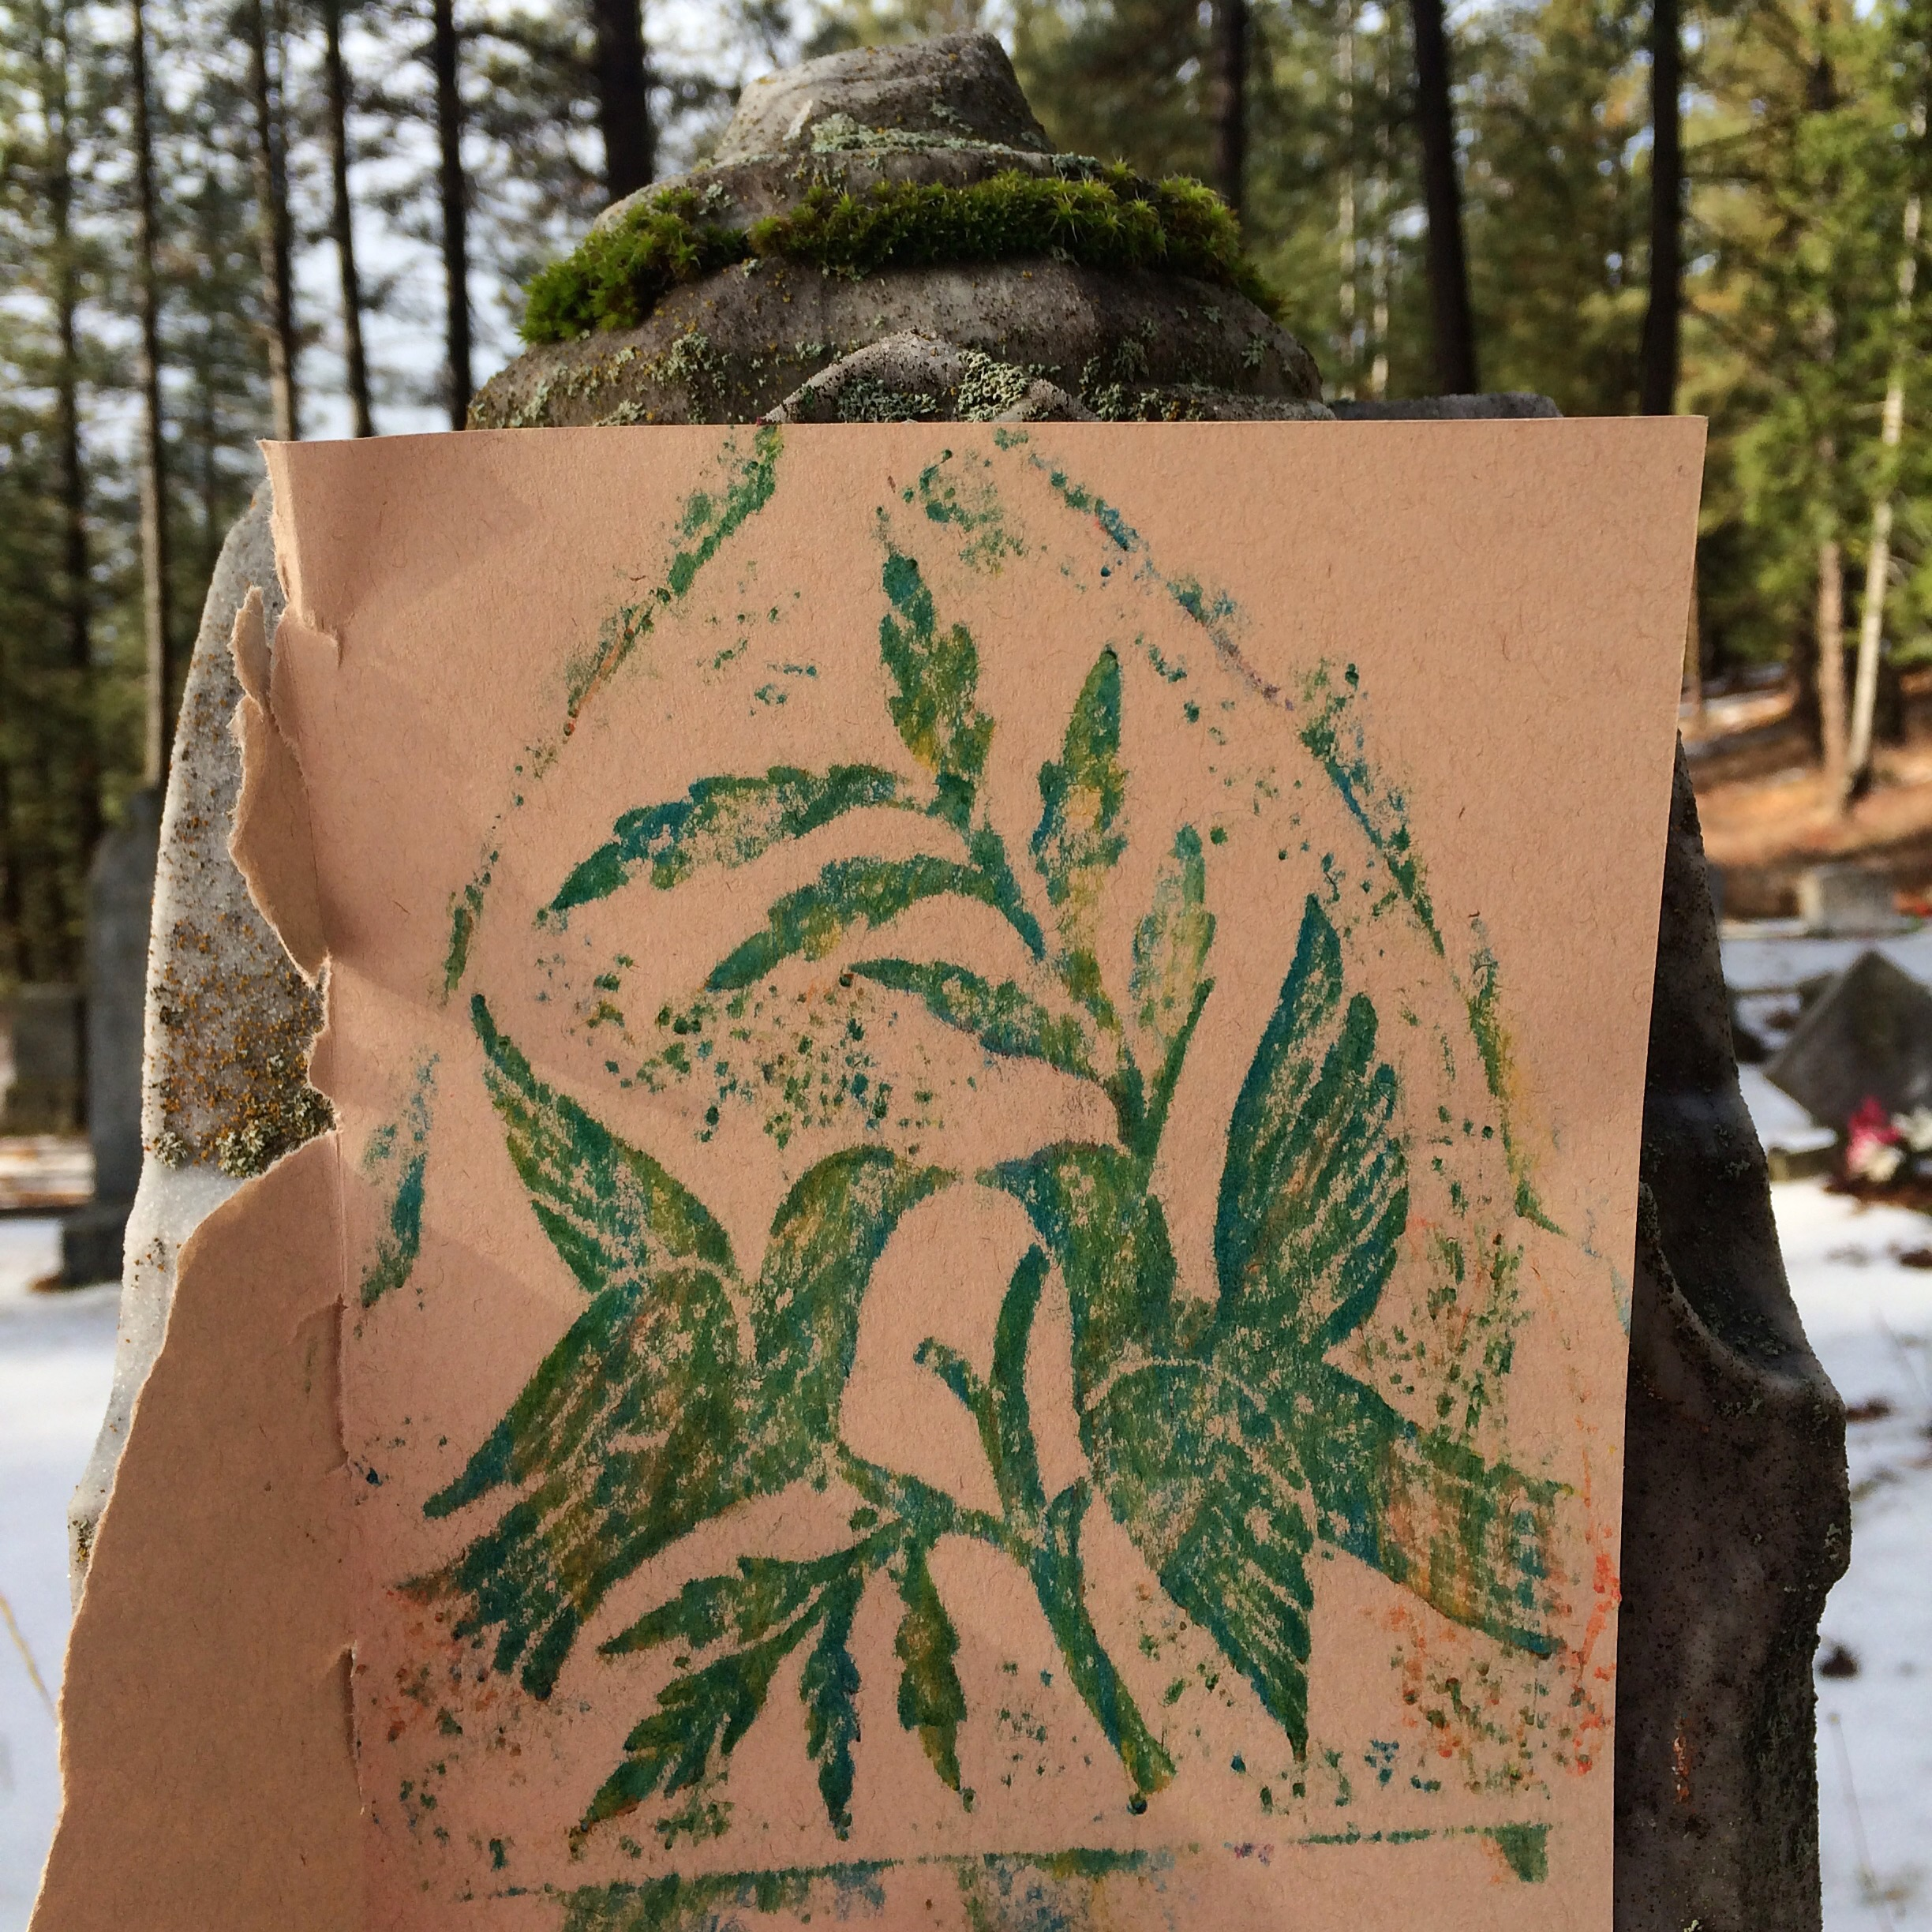 Making rubbings of gravestones on a recent trip to Roslyn, WA